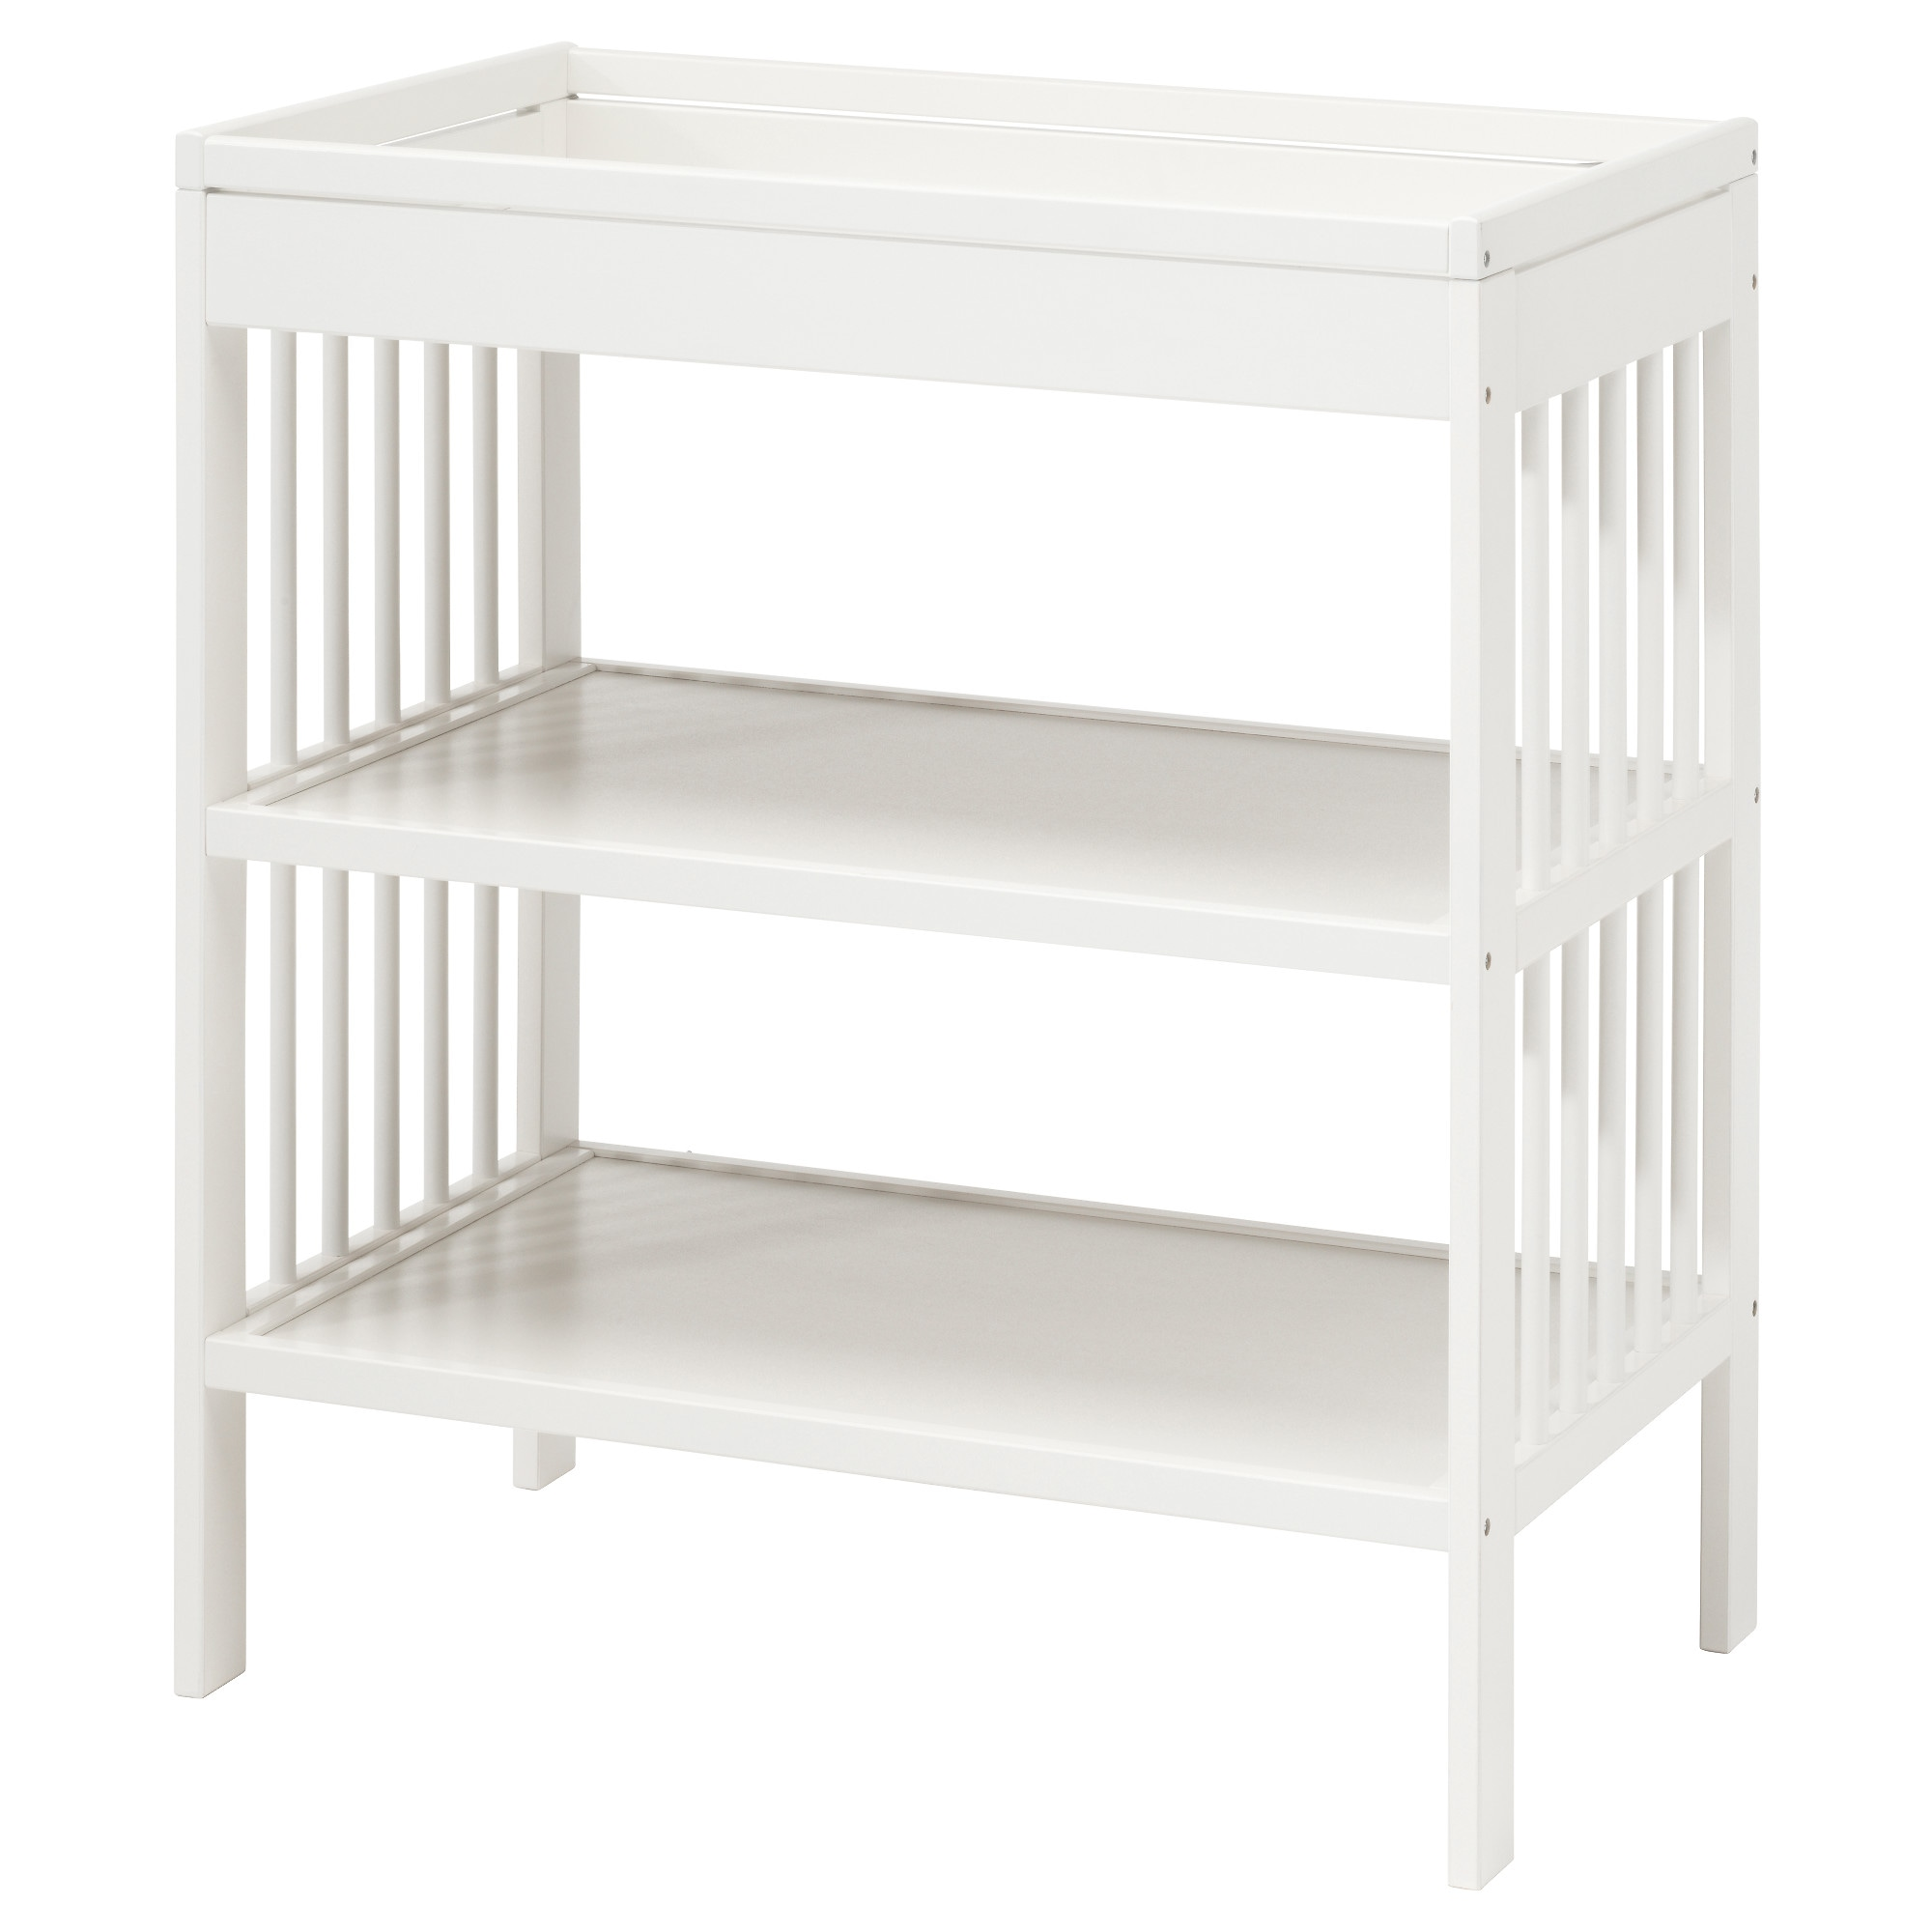 baby changing tables  ikea - gulliver changing table white width    depth